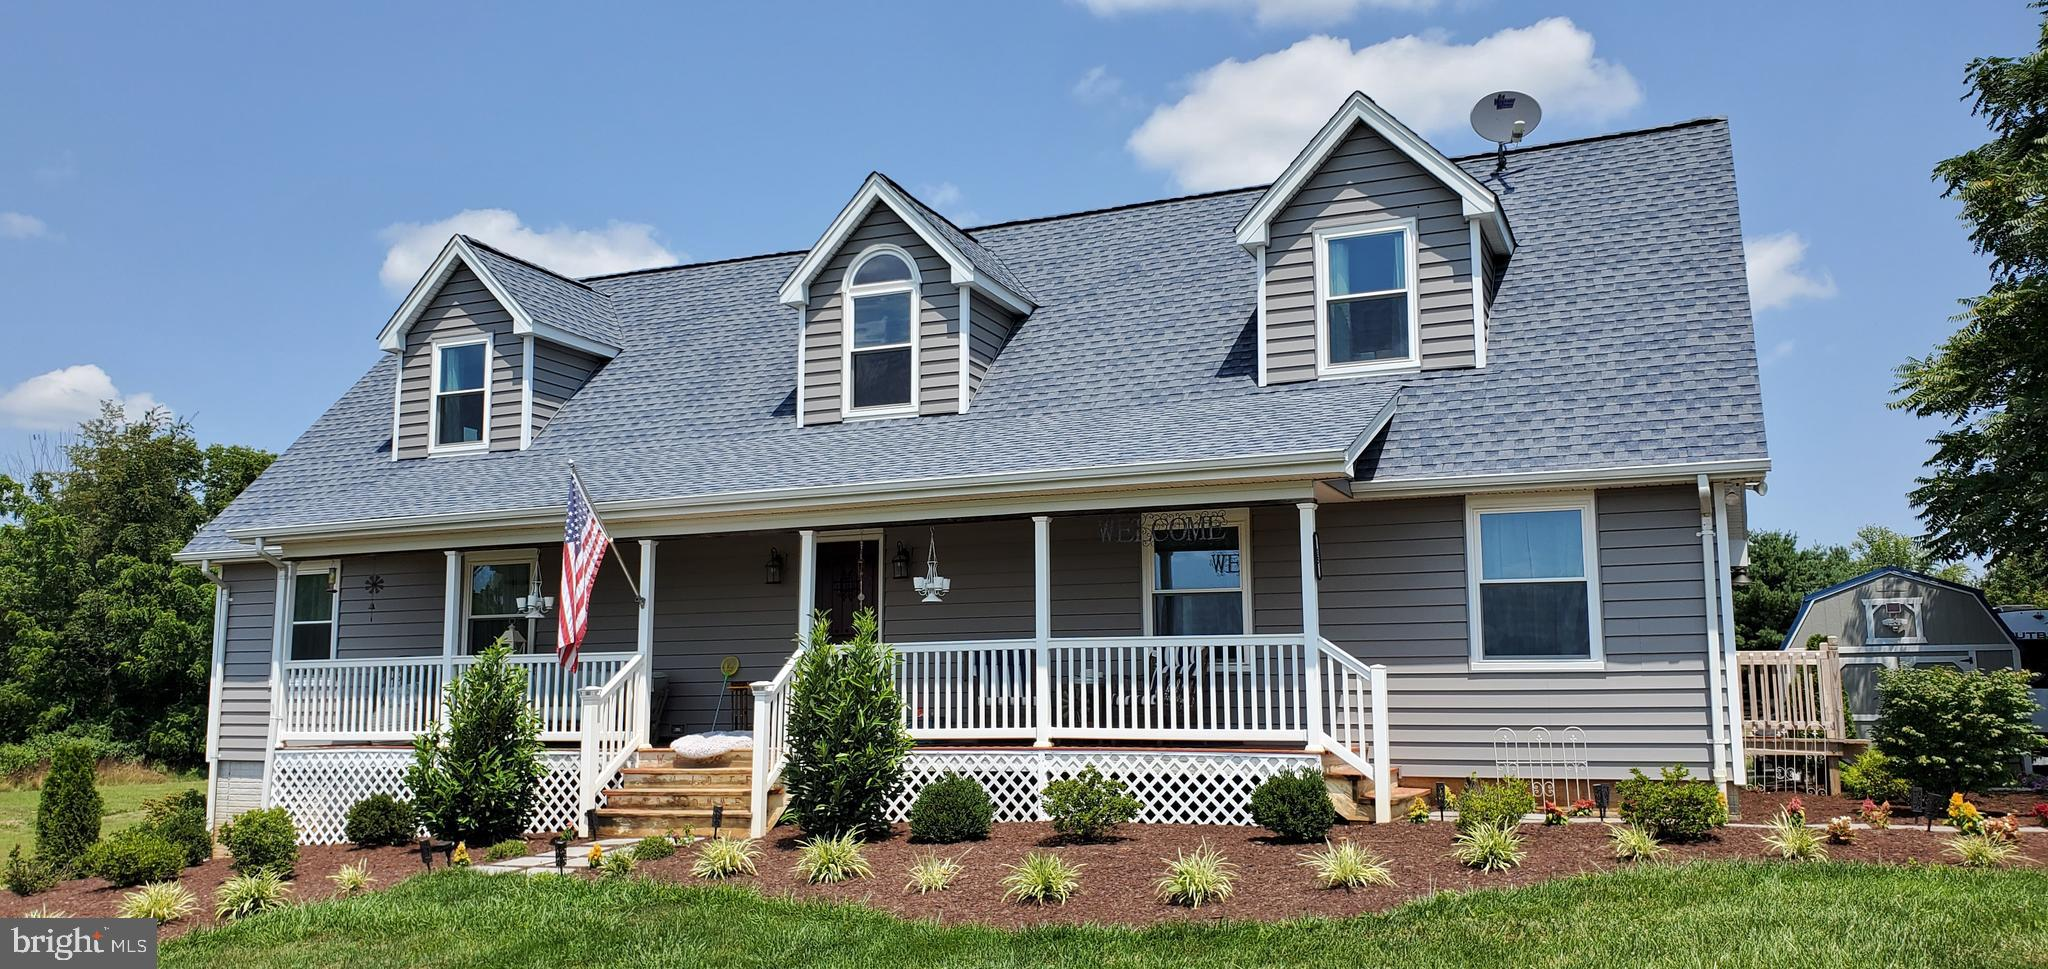 Well maintained 4 bedroom, 2.5 bathroom cape cod in desireable Clarke County.  3 acres of open land.